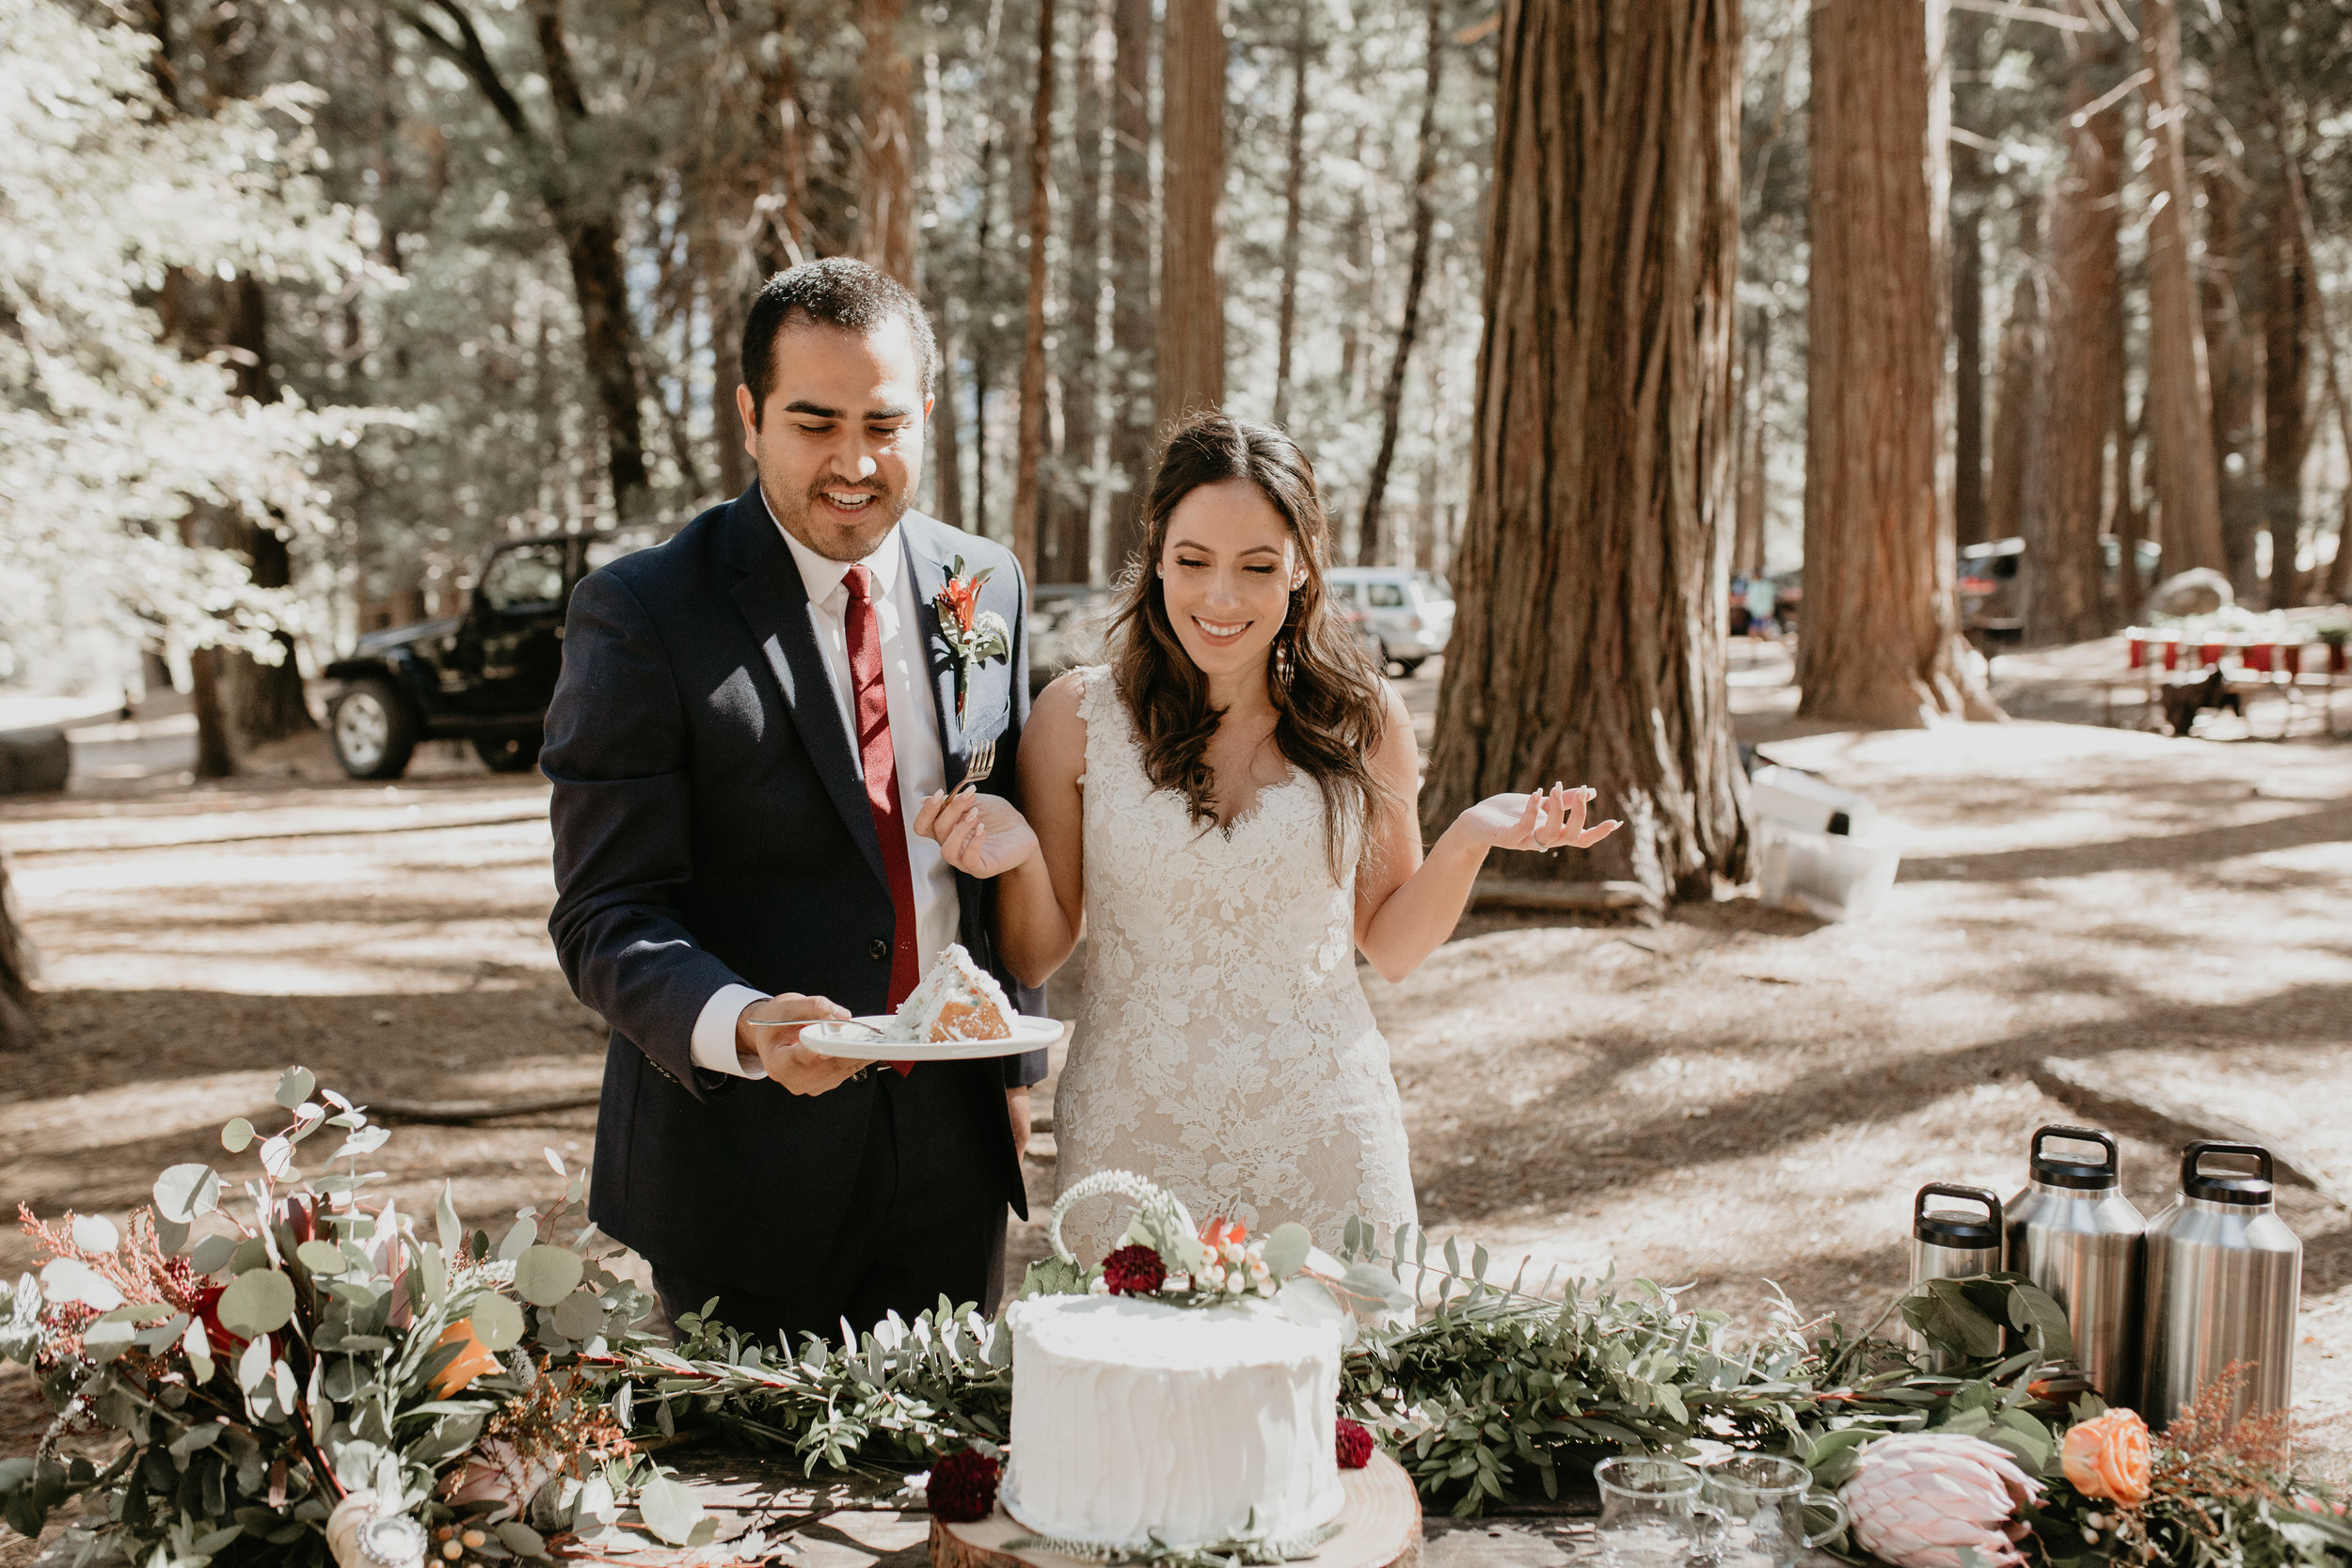 nicole-daacke-photography-intimate-elopement-wedding-yosemite-national-park-california-taft-point-sunset-photos-yosemite-valley-tunnel-view-first-look-sunrise-golden-granite-hiking-adventure-wedding-adventurous-elopement-photographer-69.jpg